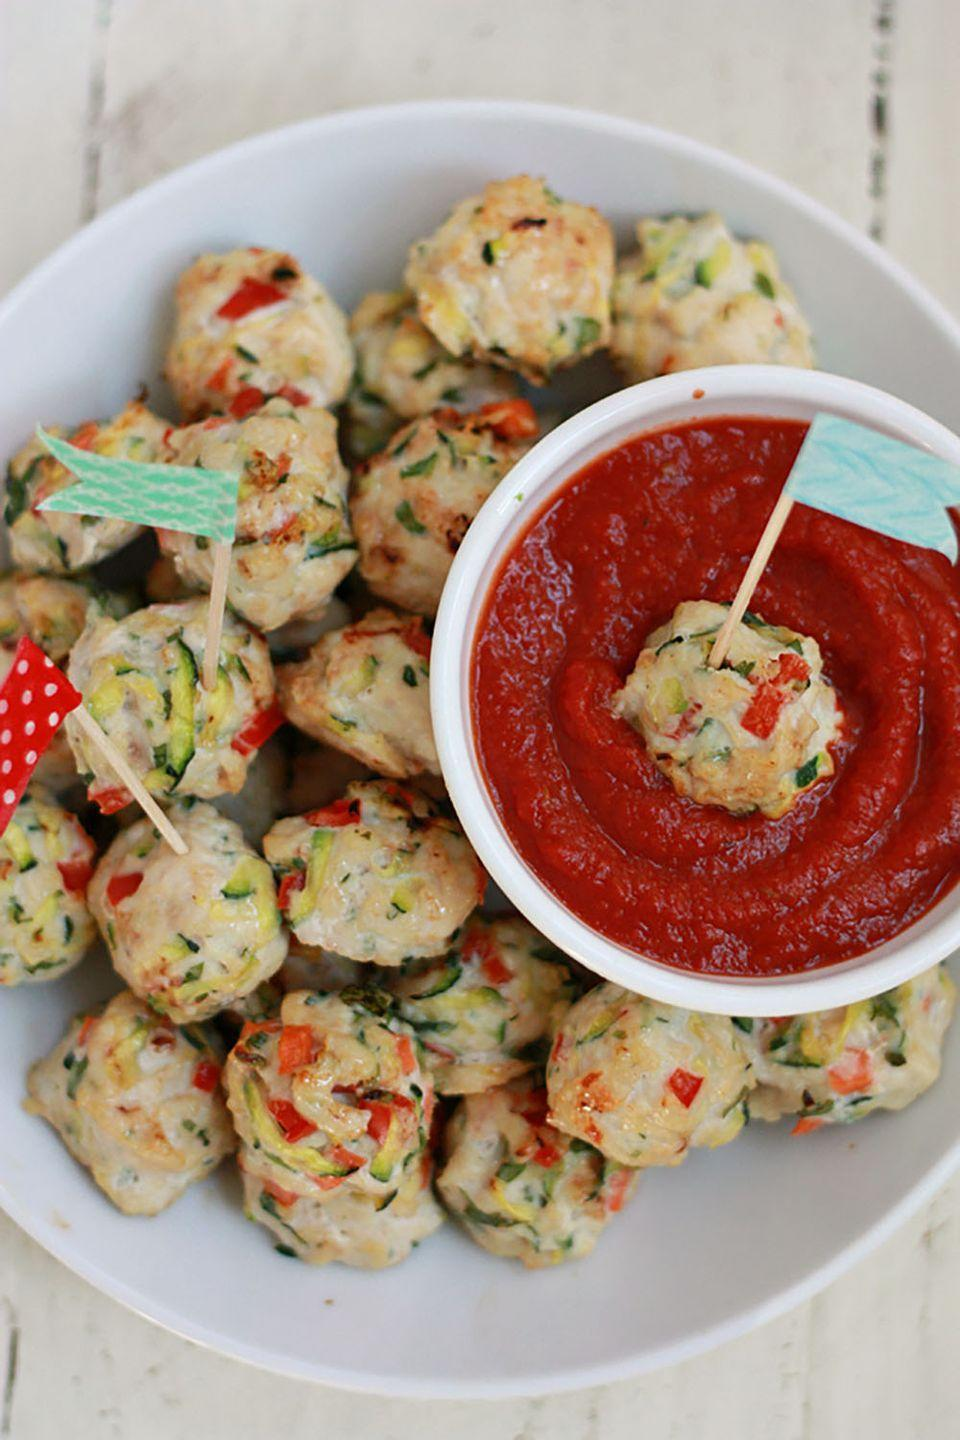 """<p>These healthy mini meatballs are perfect for dipping in marinara sauce or topping over a plate of pasta.</p><p><strong>Get the recipe at <a href=""""http://www.superhealthykids.com/pesto-chicken-veggie-meatballs/"""" rel=""""nofollow noopener"""" target=""""_blank"""" data-ylk=""""slk:Super Healthy Kids"""" class=""""link rapid-noclick-resp"""">Super Healthy Kids</a>.</strong></p>"""